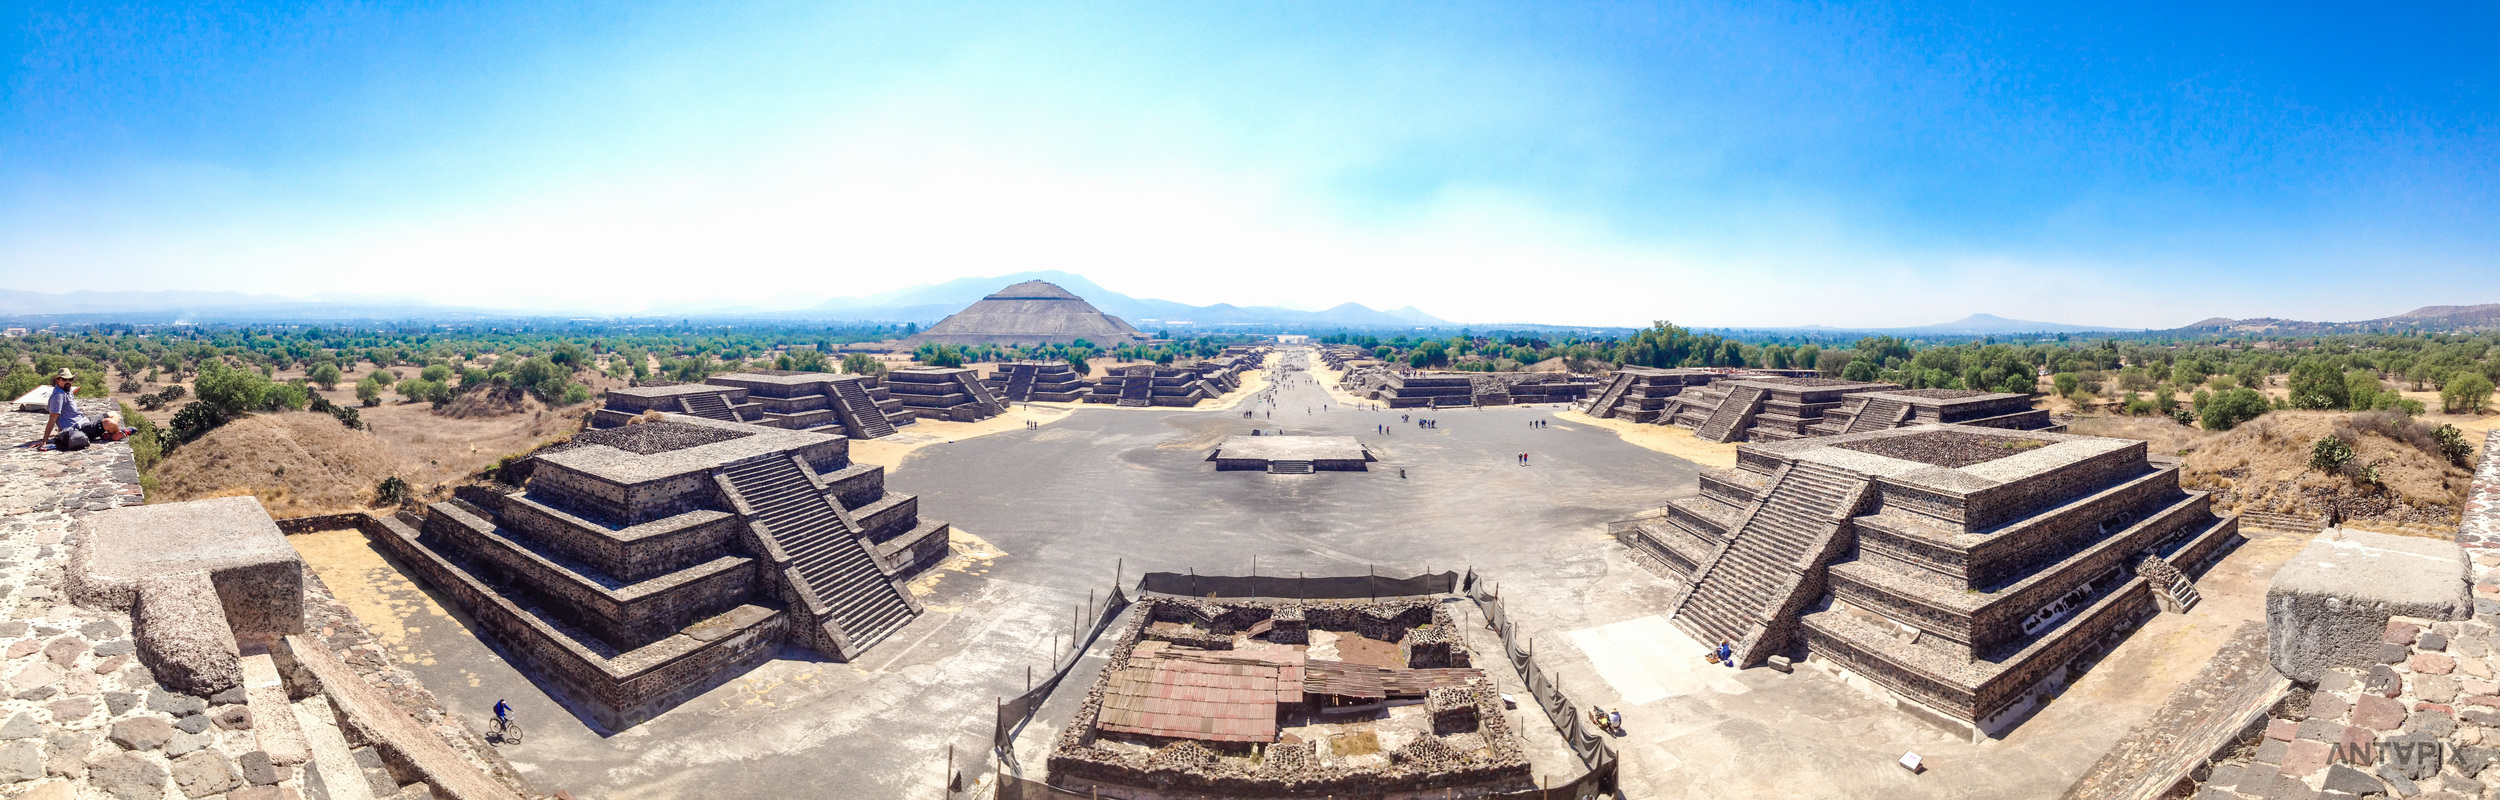 The view from the mid level of the Pyramid of the Moon